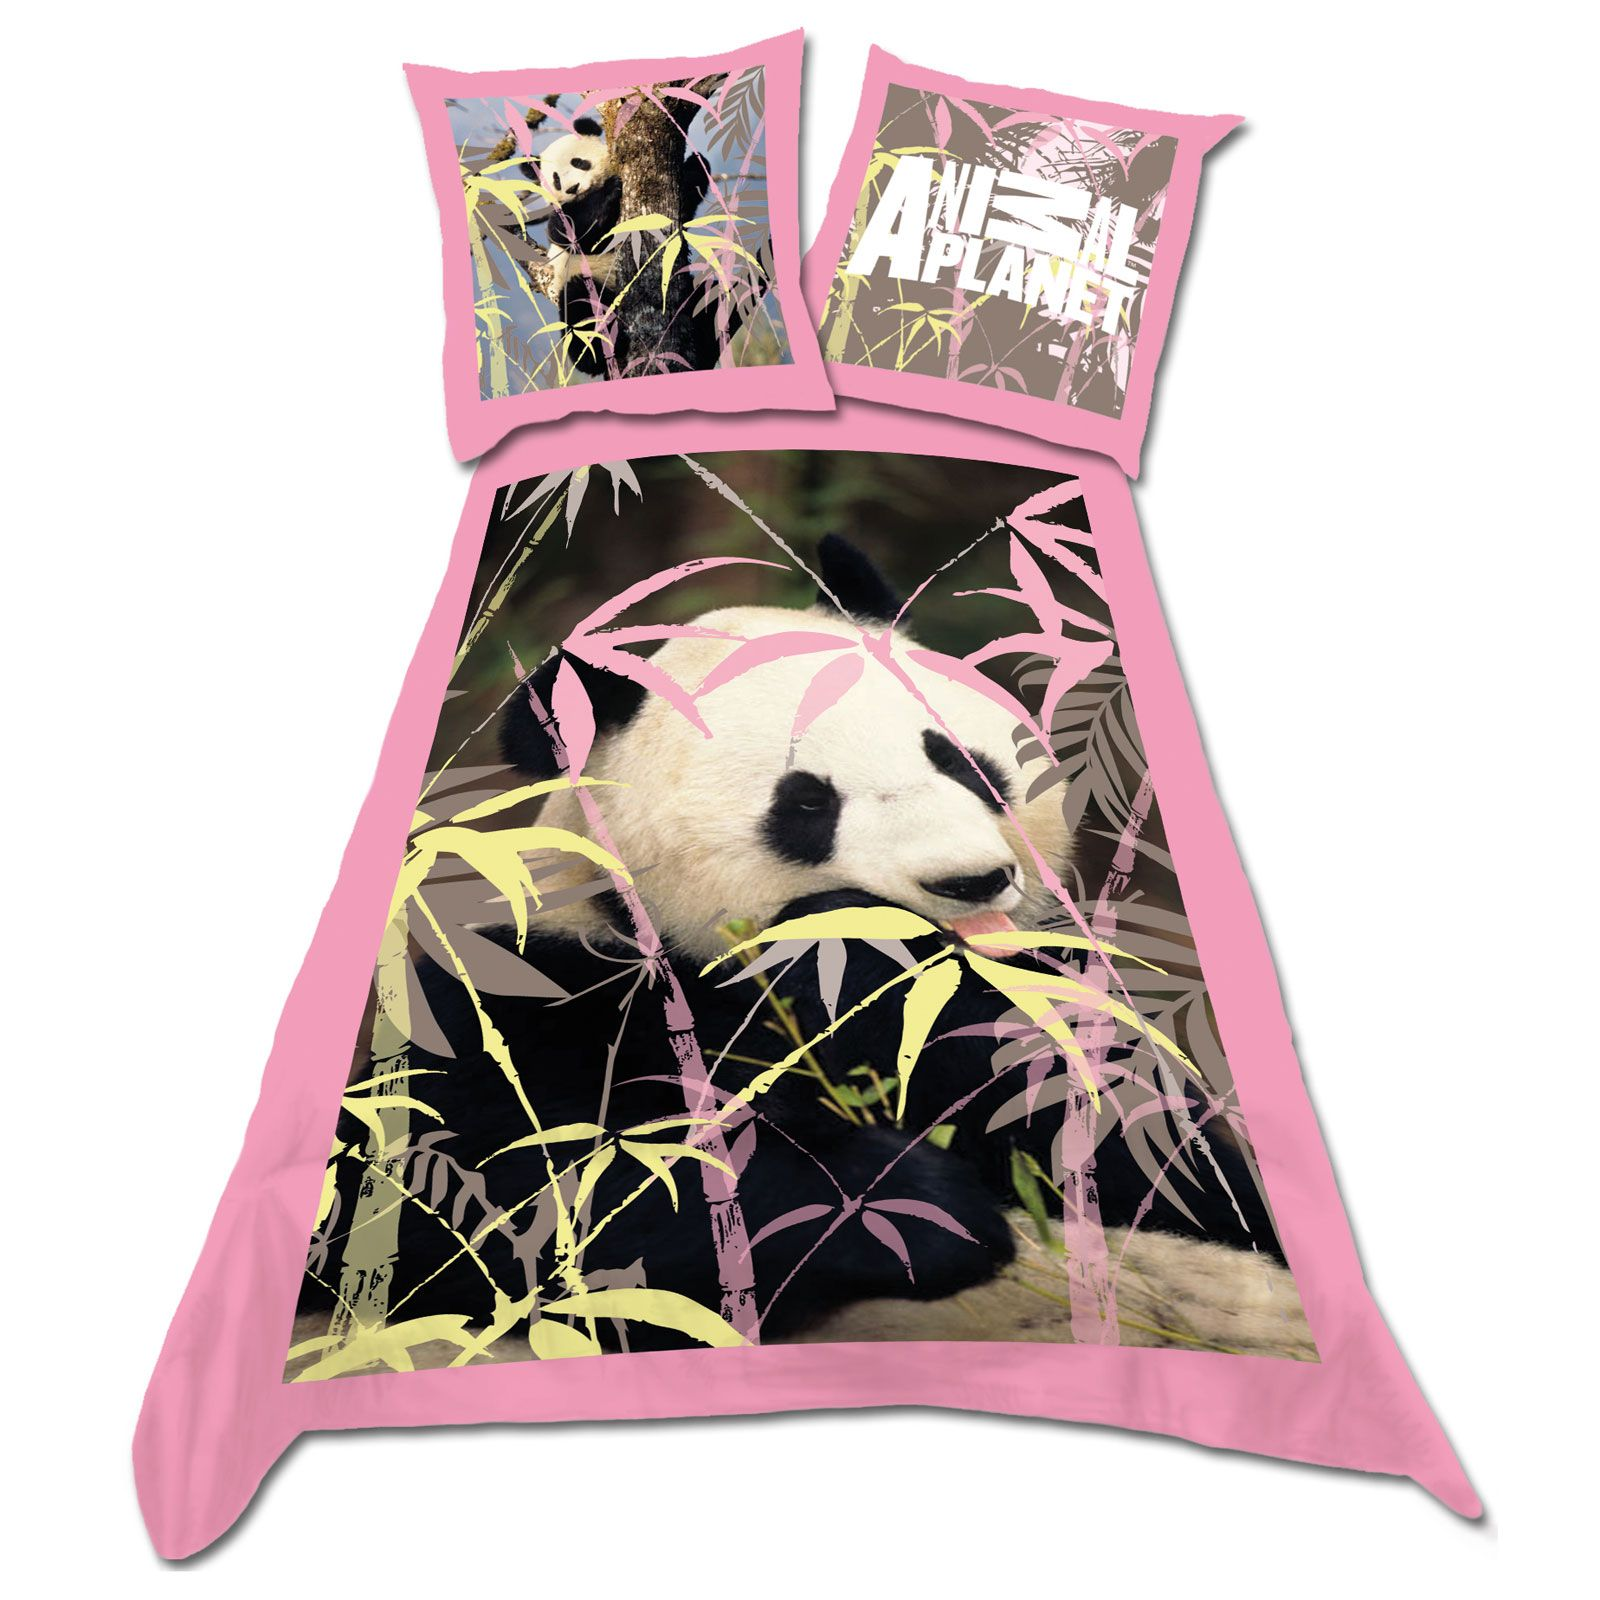 animal planet 39 panda bear 39 single duvet cover 100 cotton new ebay. Black Bedroom Furniture Sets. Home Design Ideas